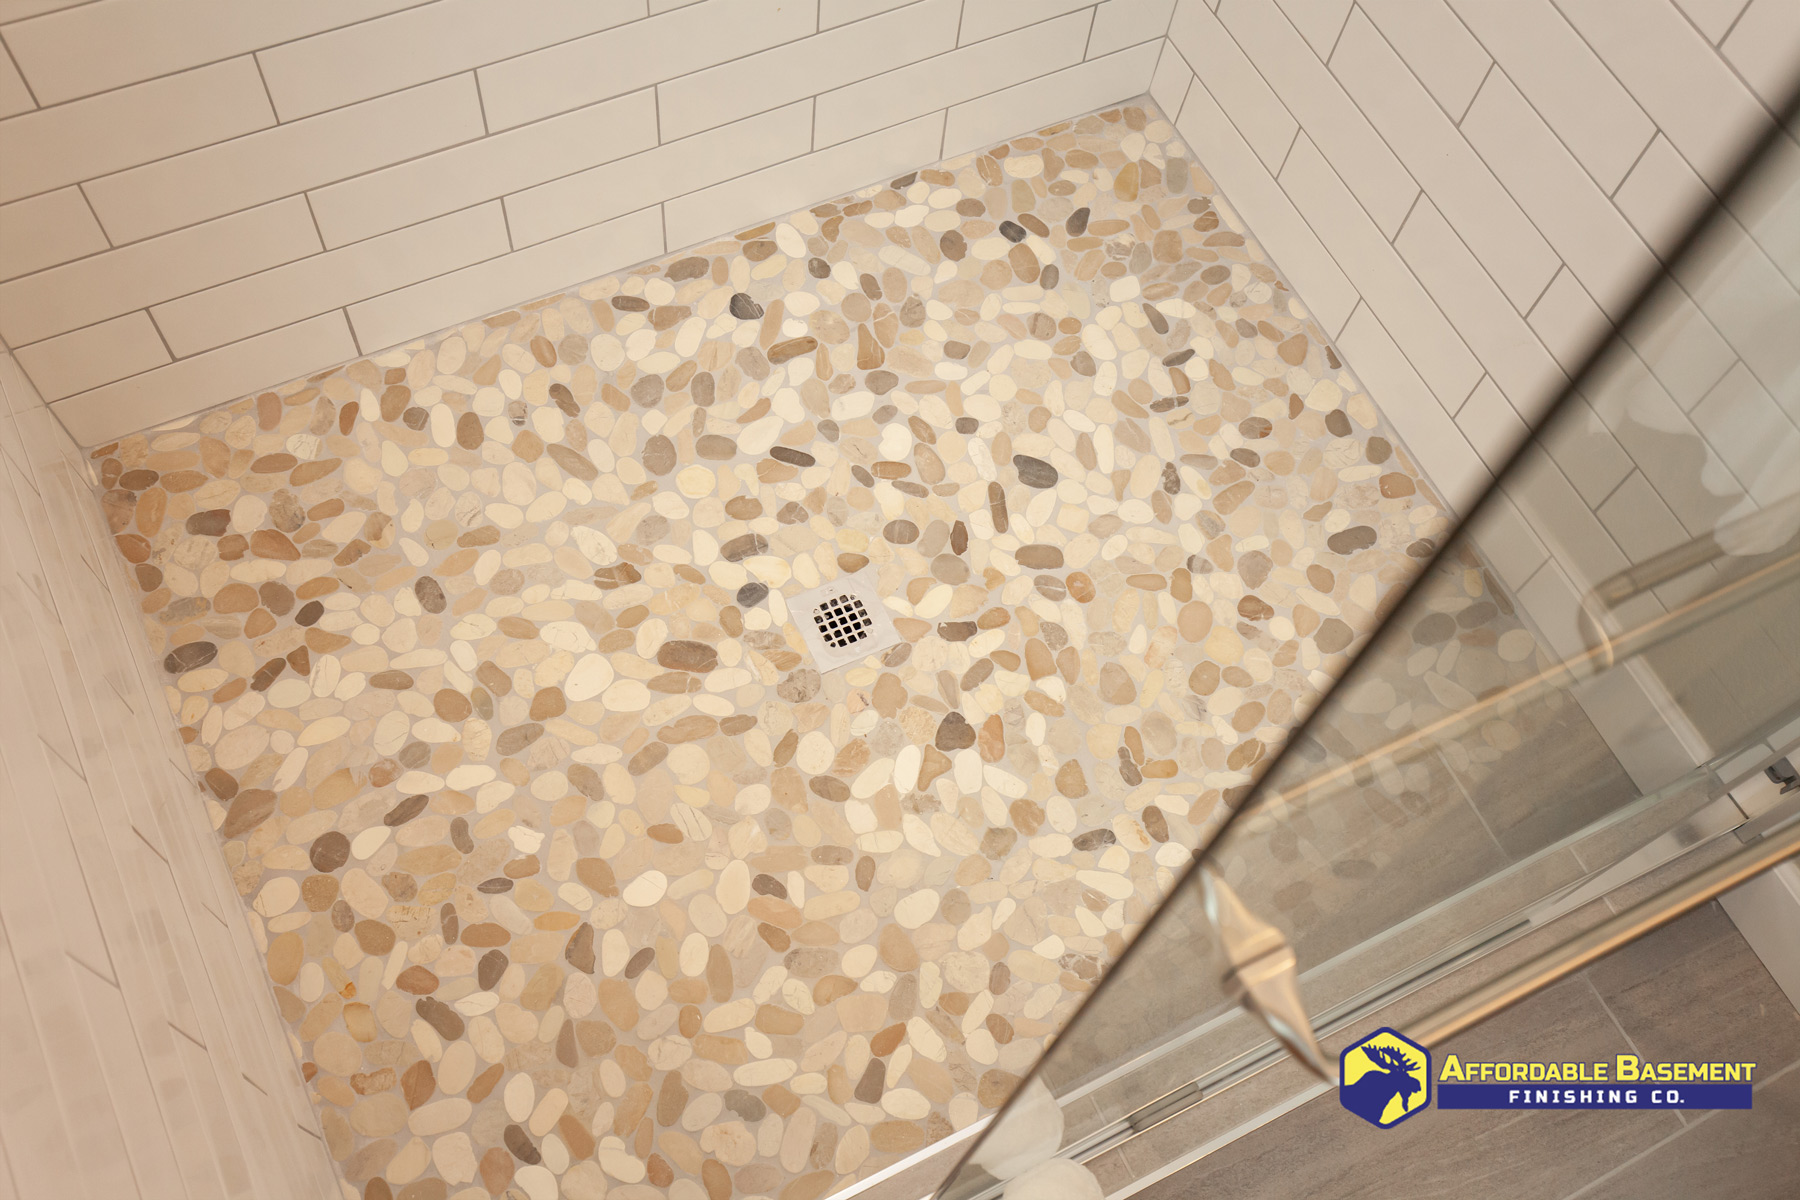 2020 Shower Bathroom Remodel - Denver Basement Finishing and Remodeling